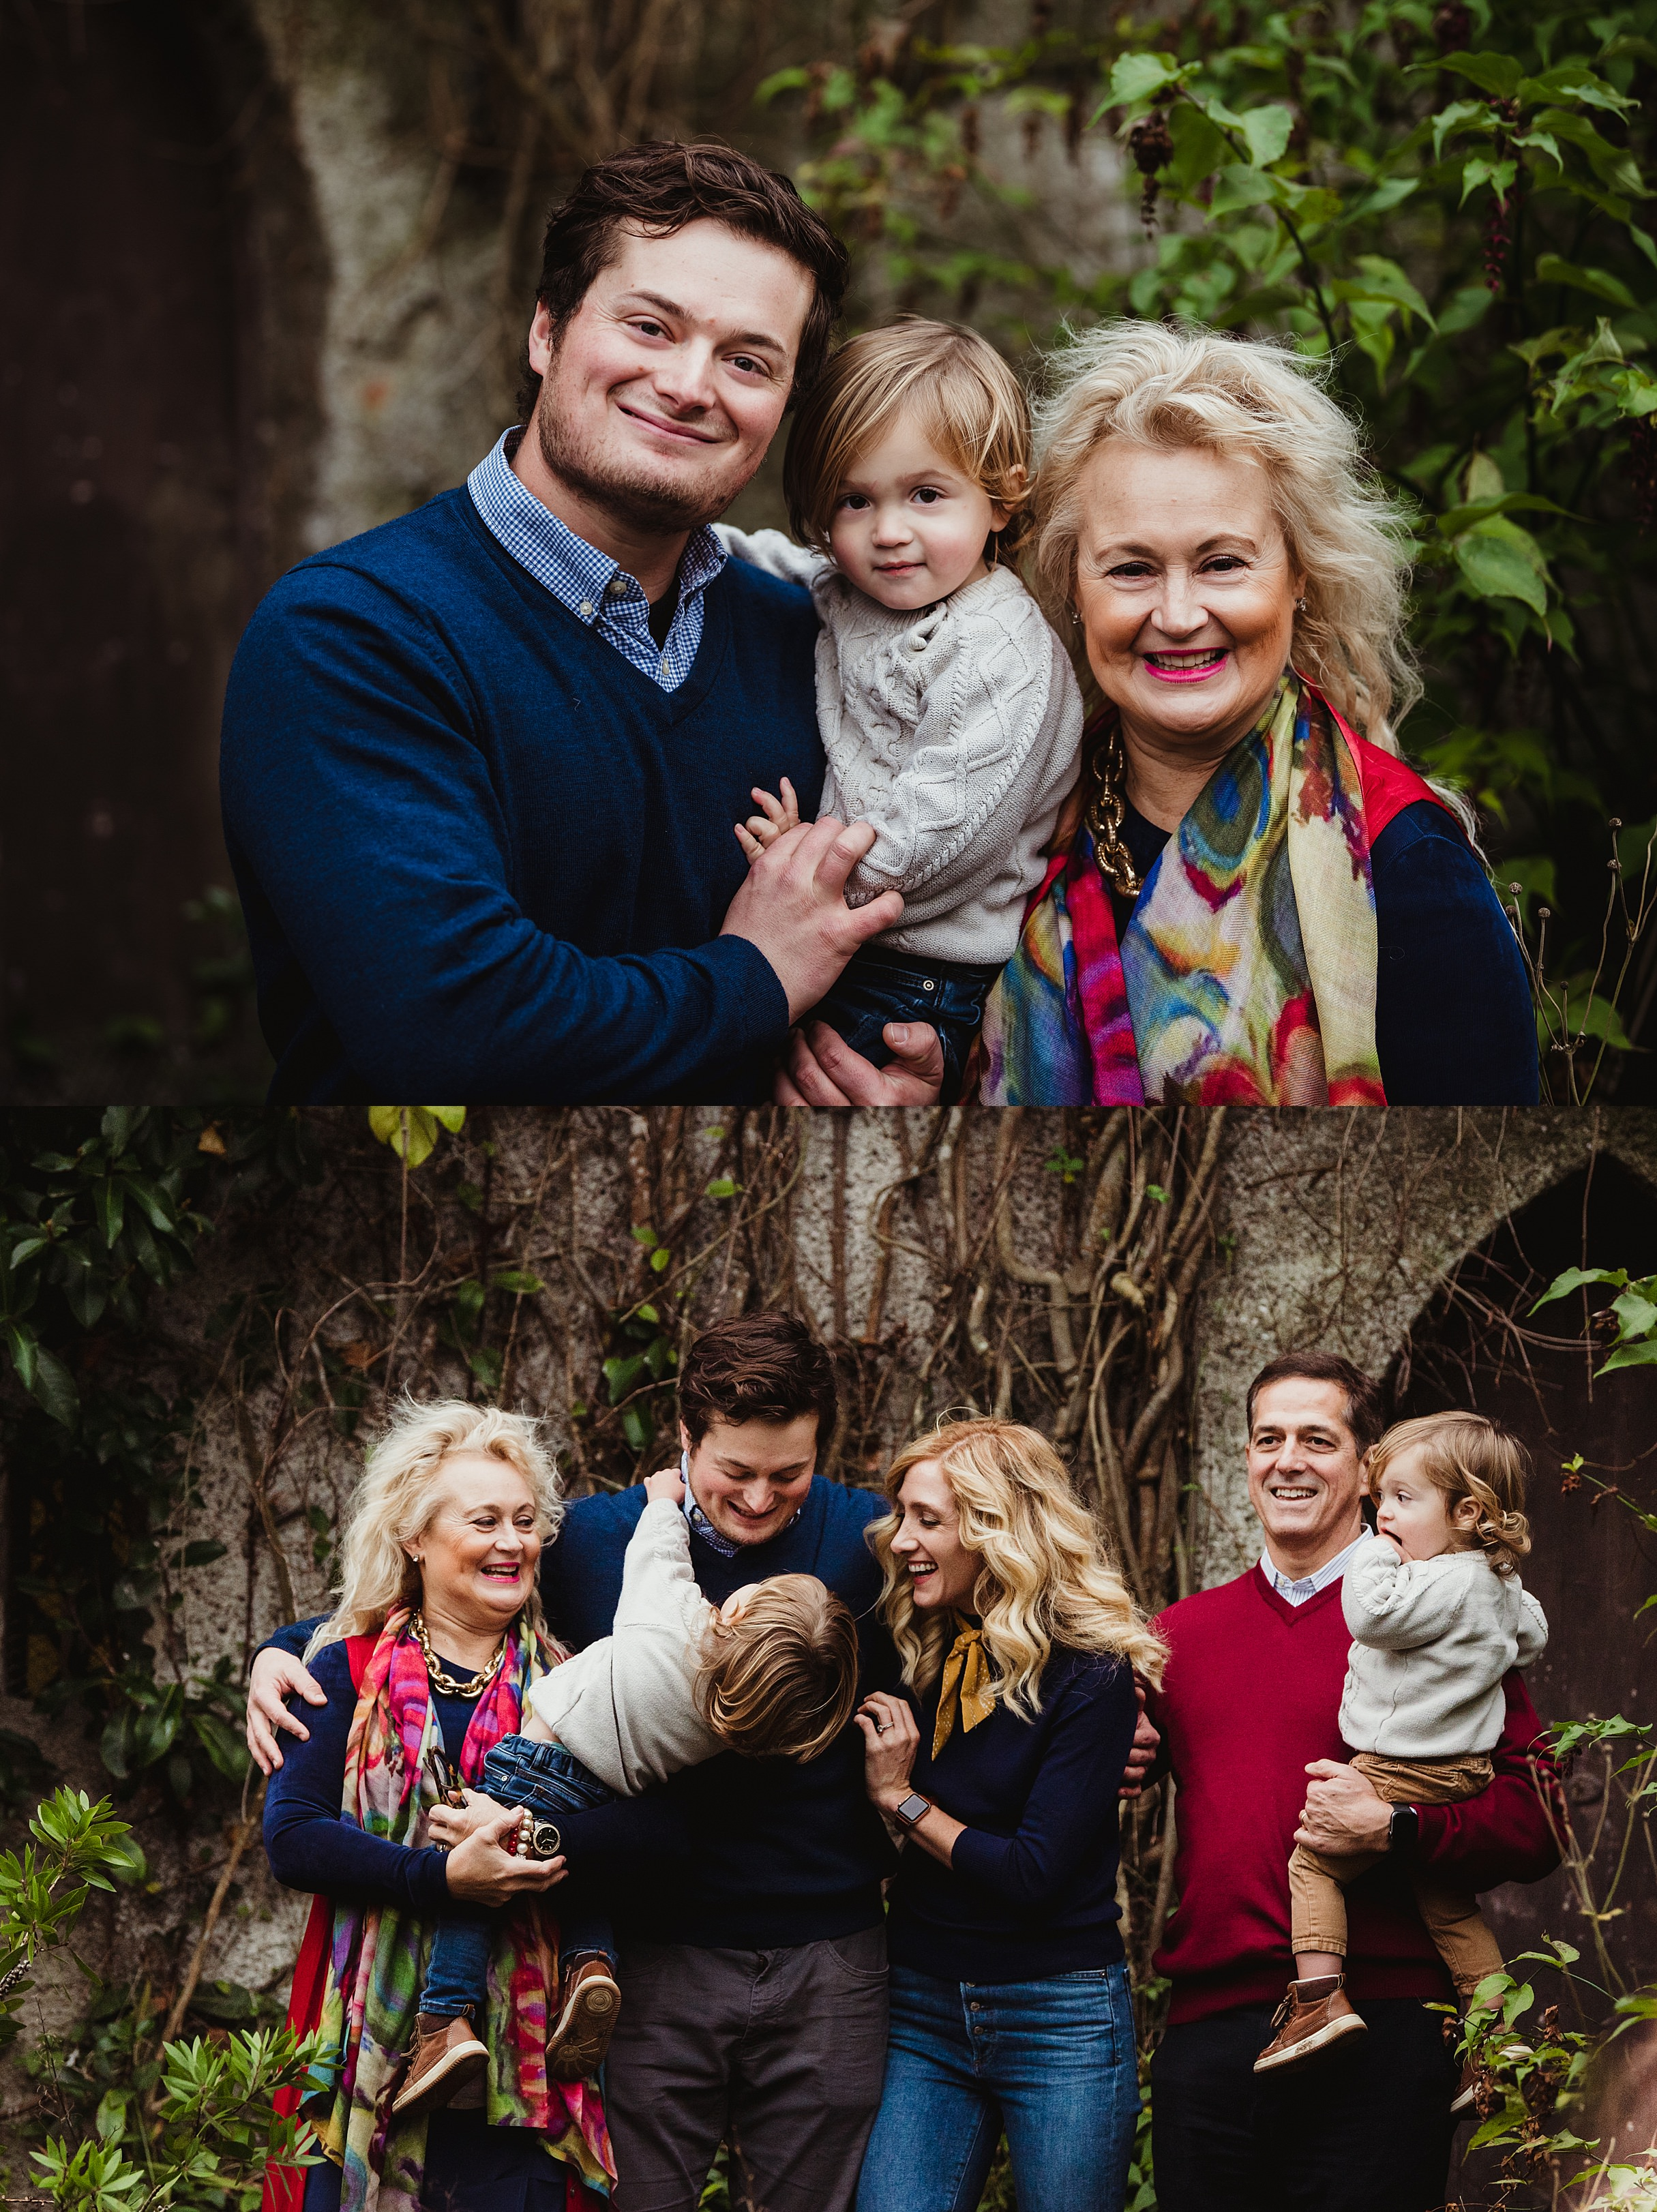 Malahide-Session-Family-Kids-Ireland-2.jpg